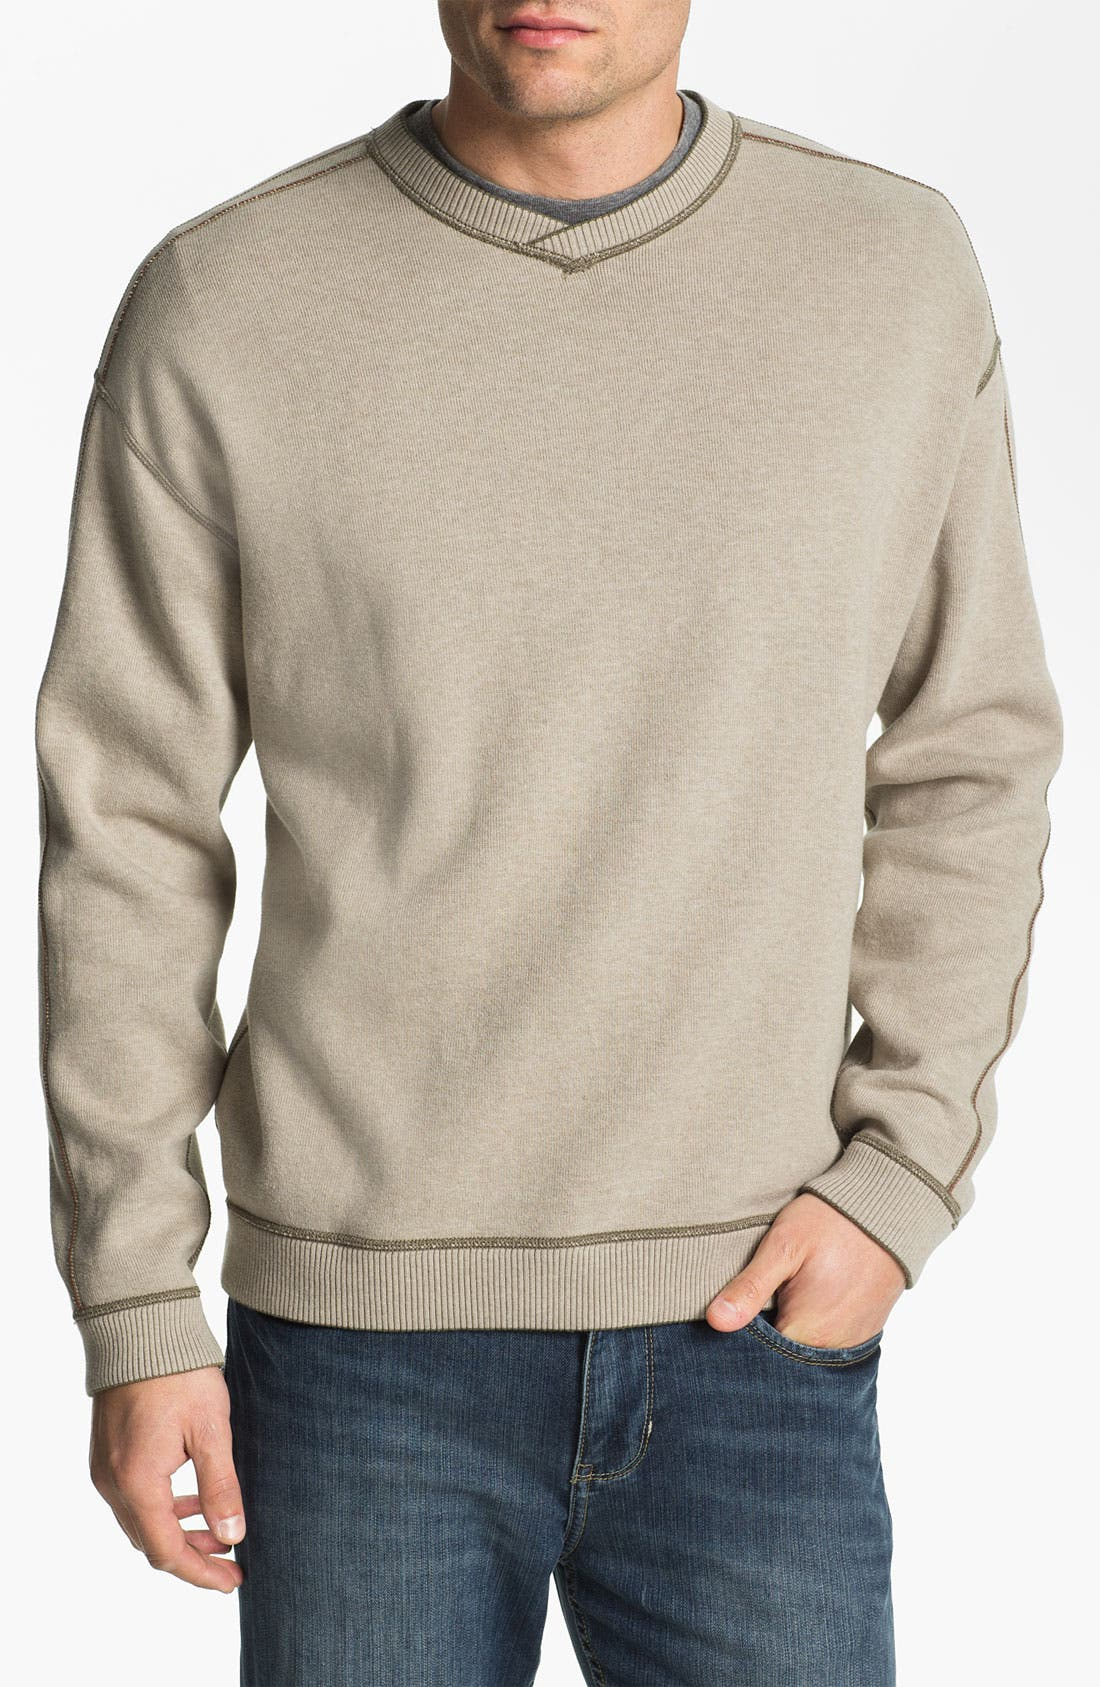 Alternate Image 2  - Tommy Bahama 'Flip Side Pro' Fleece V-Neck Sweatshirt (Big & Tall)